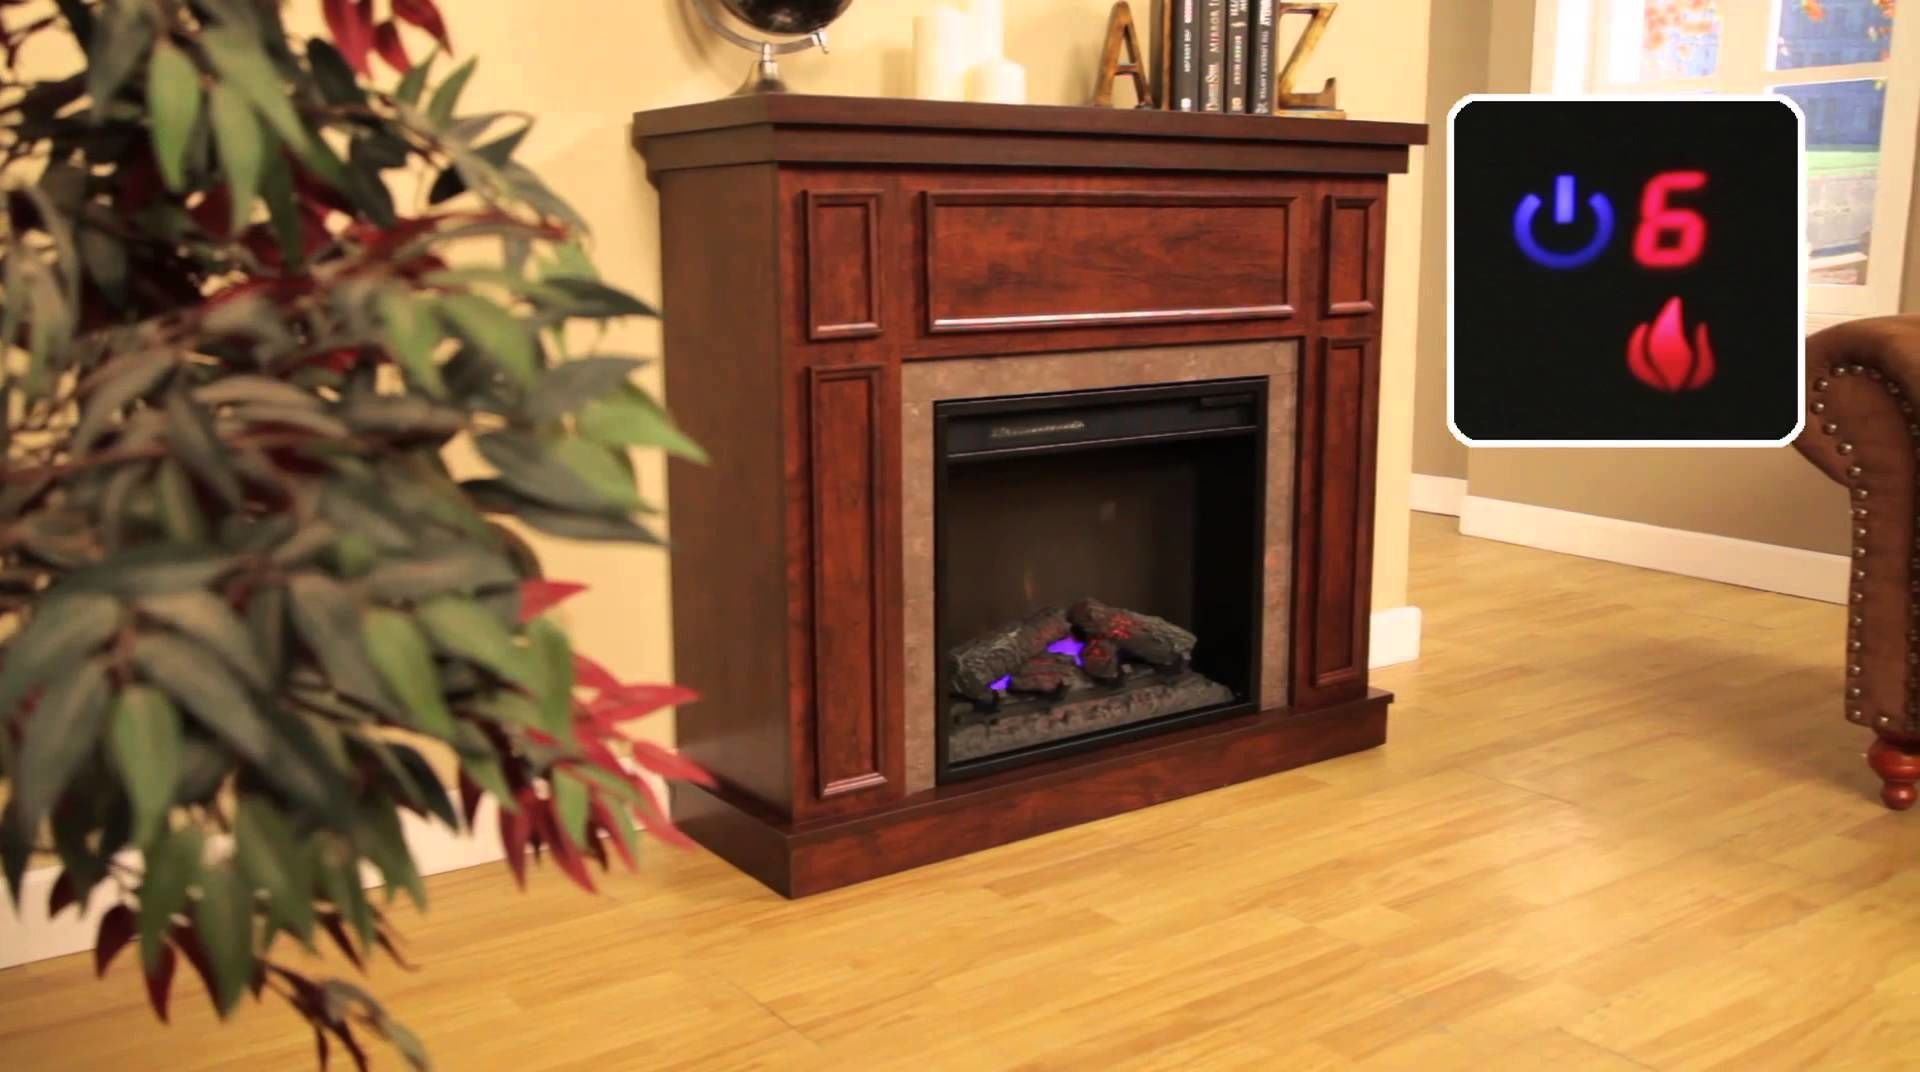 Hampton Bay Electric Fireplace - http://officebrokers.info/hampton-bay-electric-fireplace/